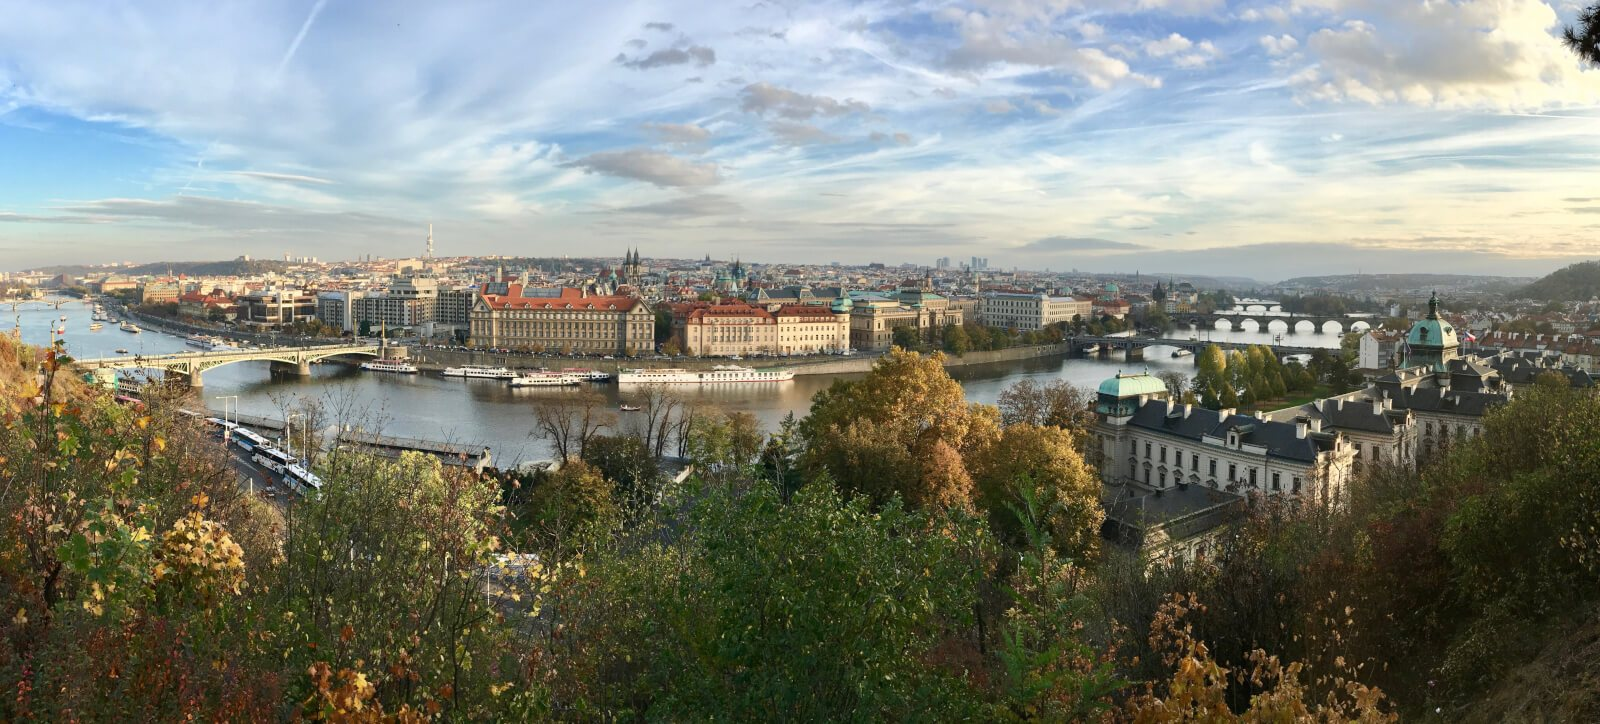 Panoramic view of Prague with river